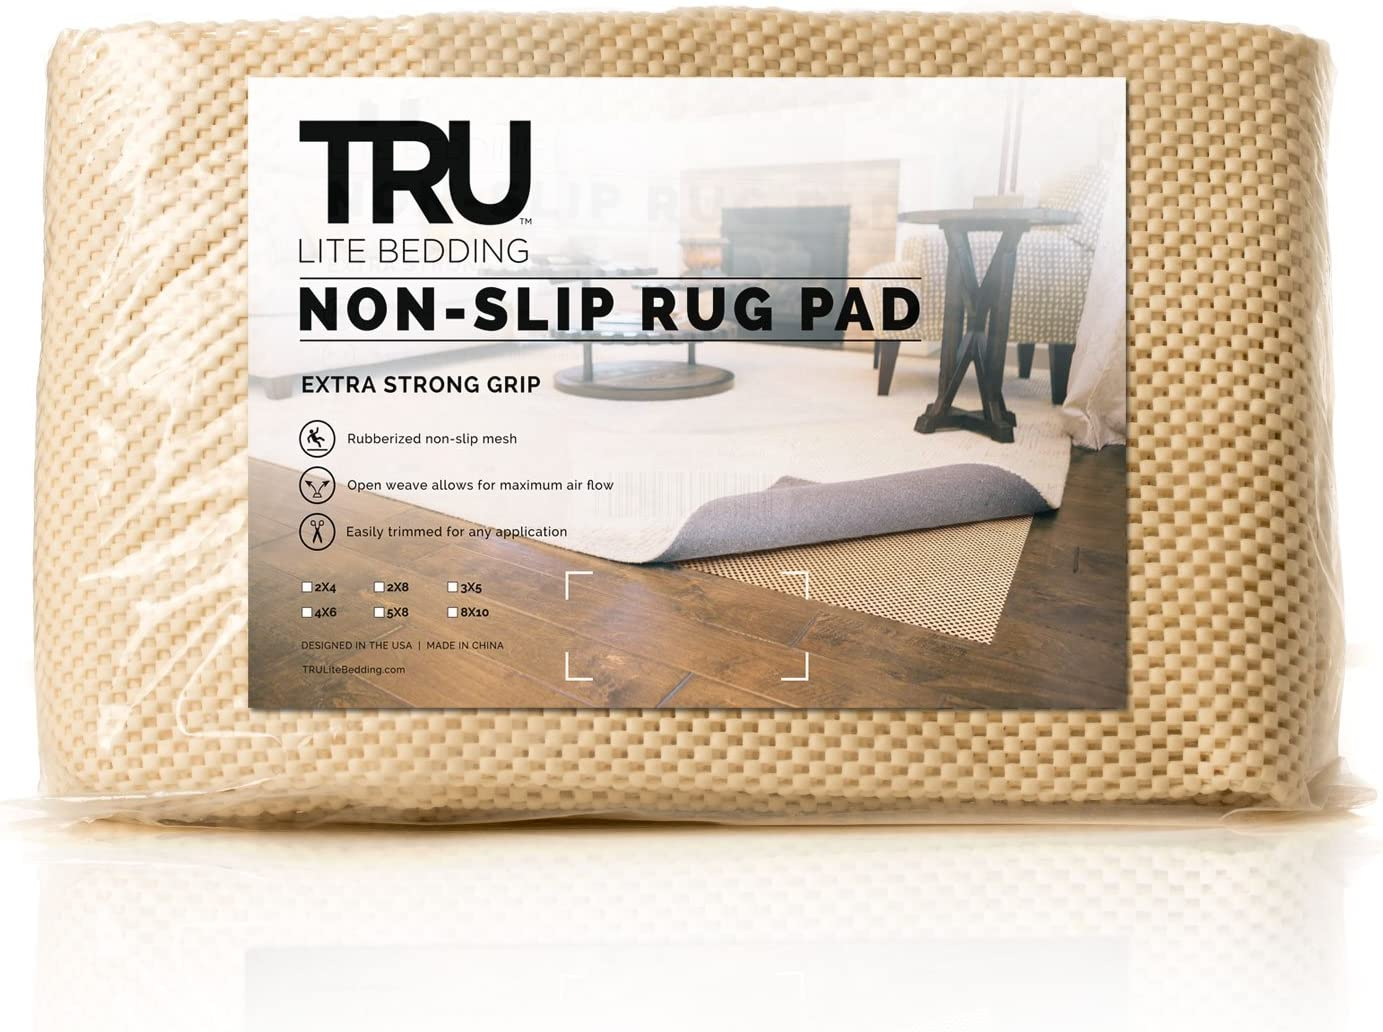 TRU Lite Extra Strong Rug Gripper - Non Slip Furniture Pad - Indoor Carpet Pad for Hardwood Floors - Anti Skid Mat - Anchors Rugs to Floors - Trim to fit Any Size - 8' x 10'